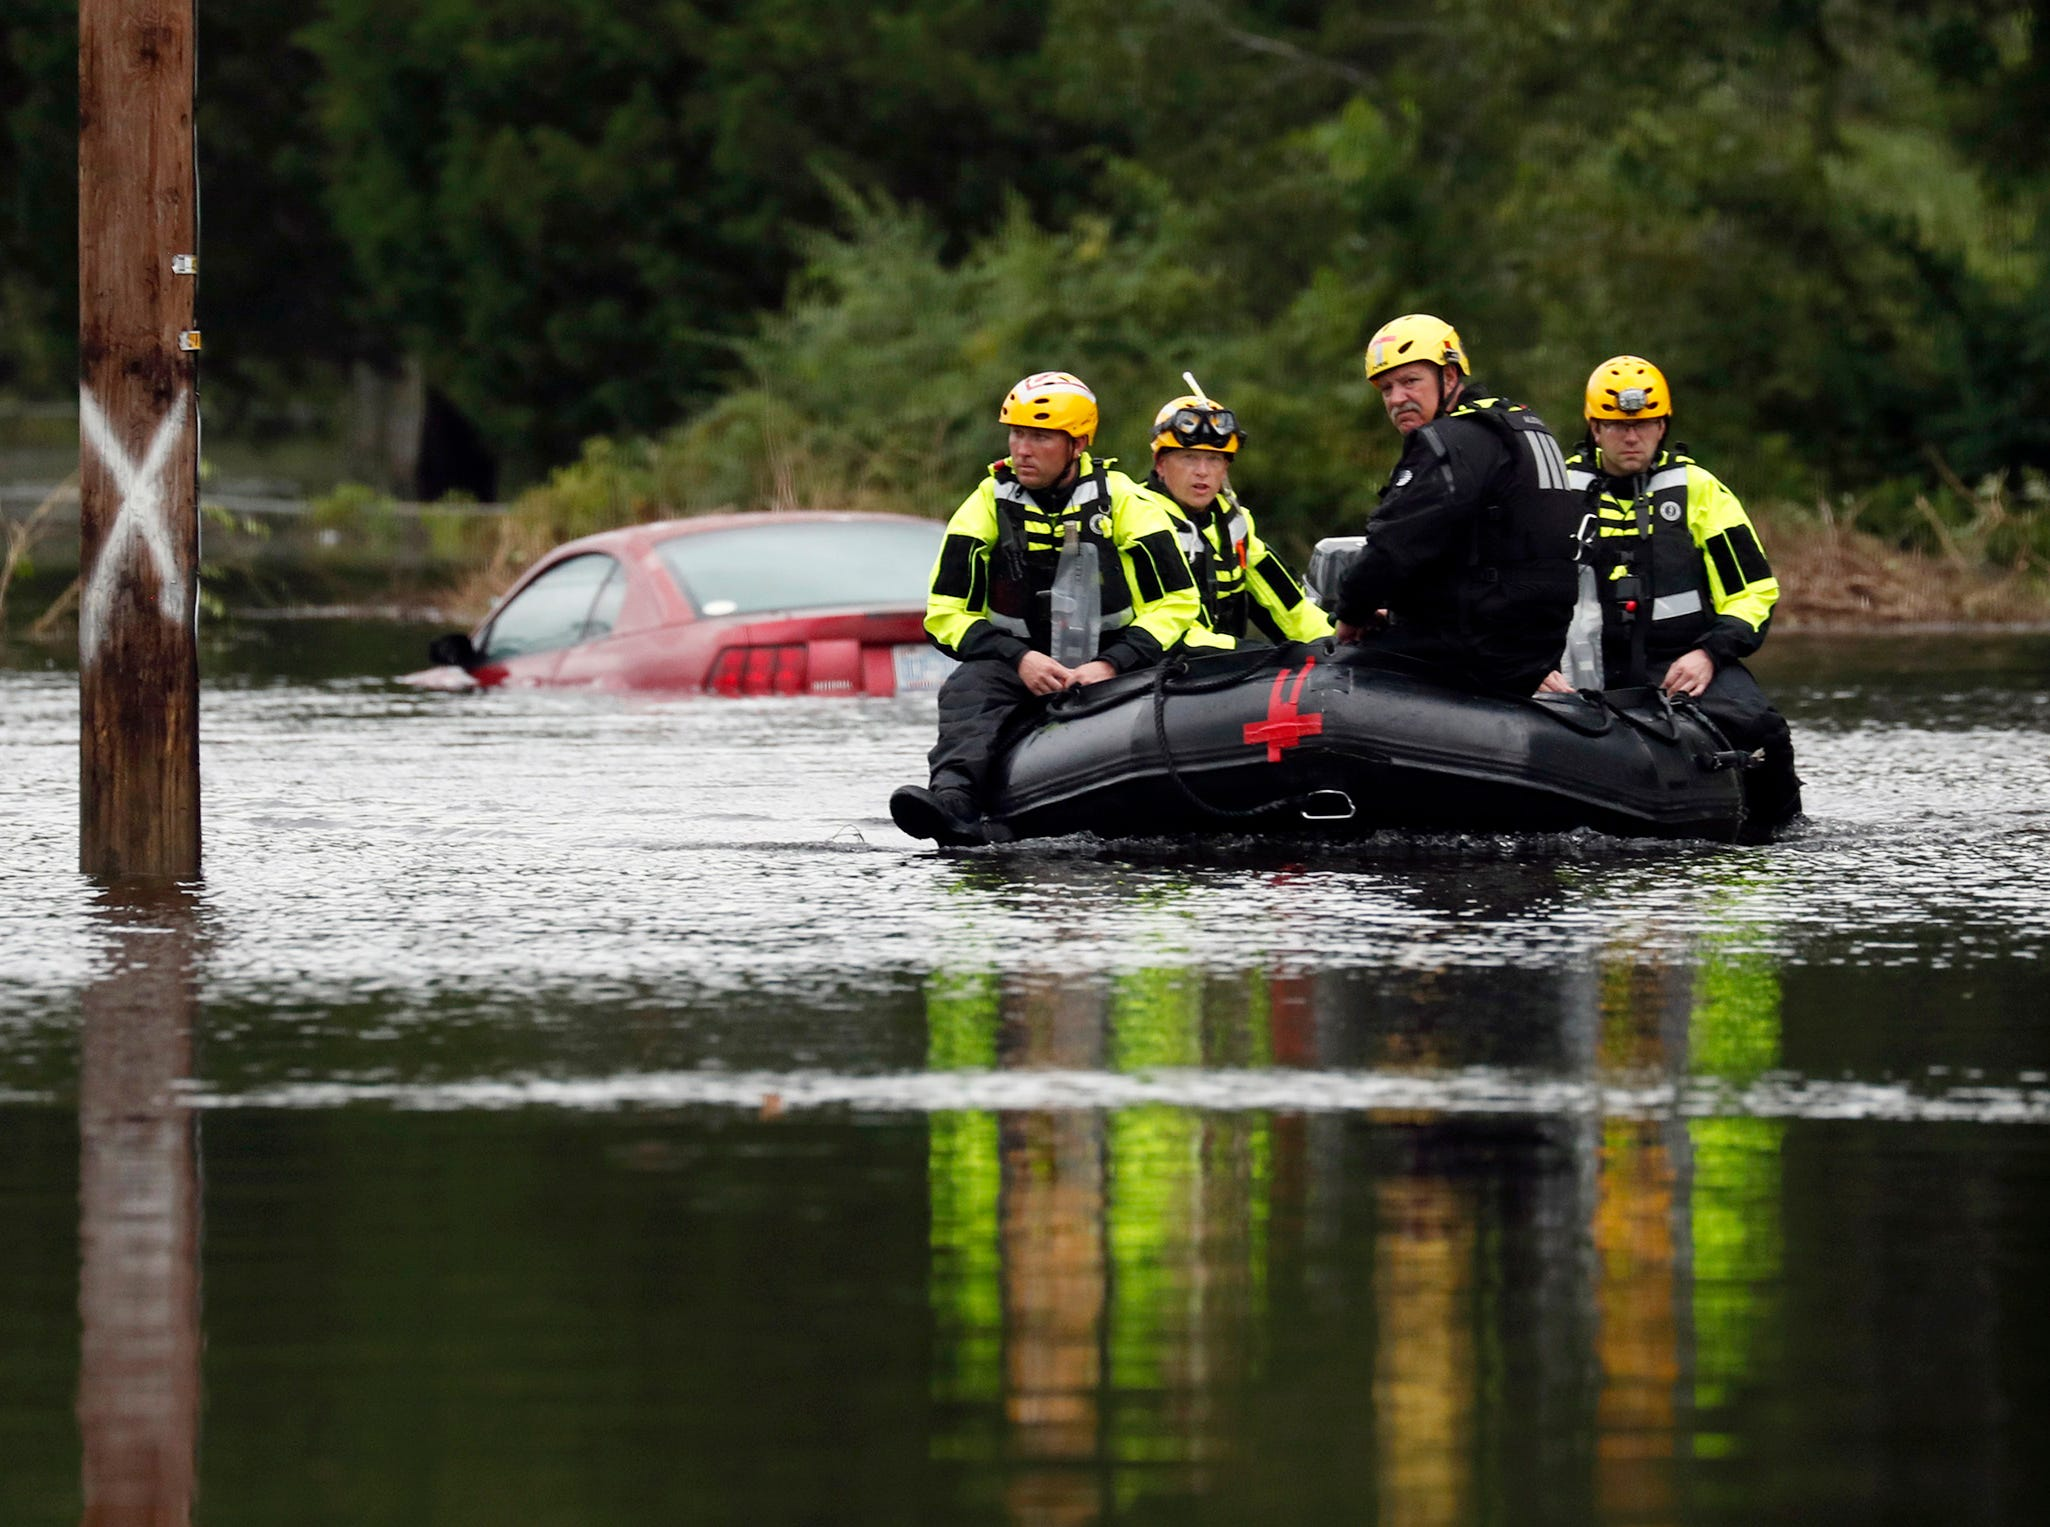 Members of a swift water rescue team check a flooded street caused by the tropical storm Florence in New Bern, N.C., on Saturday Sept. 15, 2018.